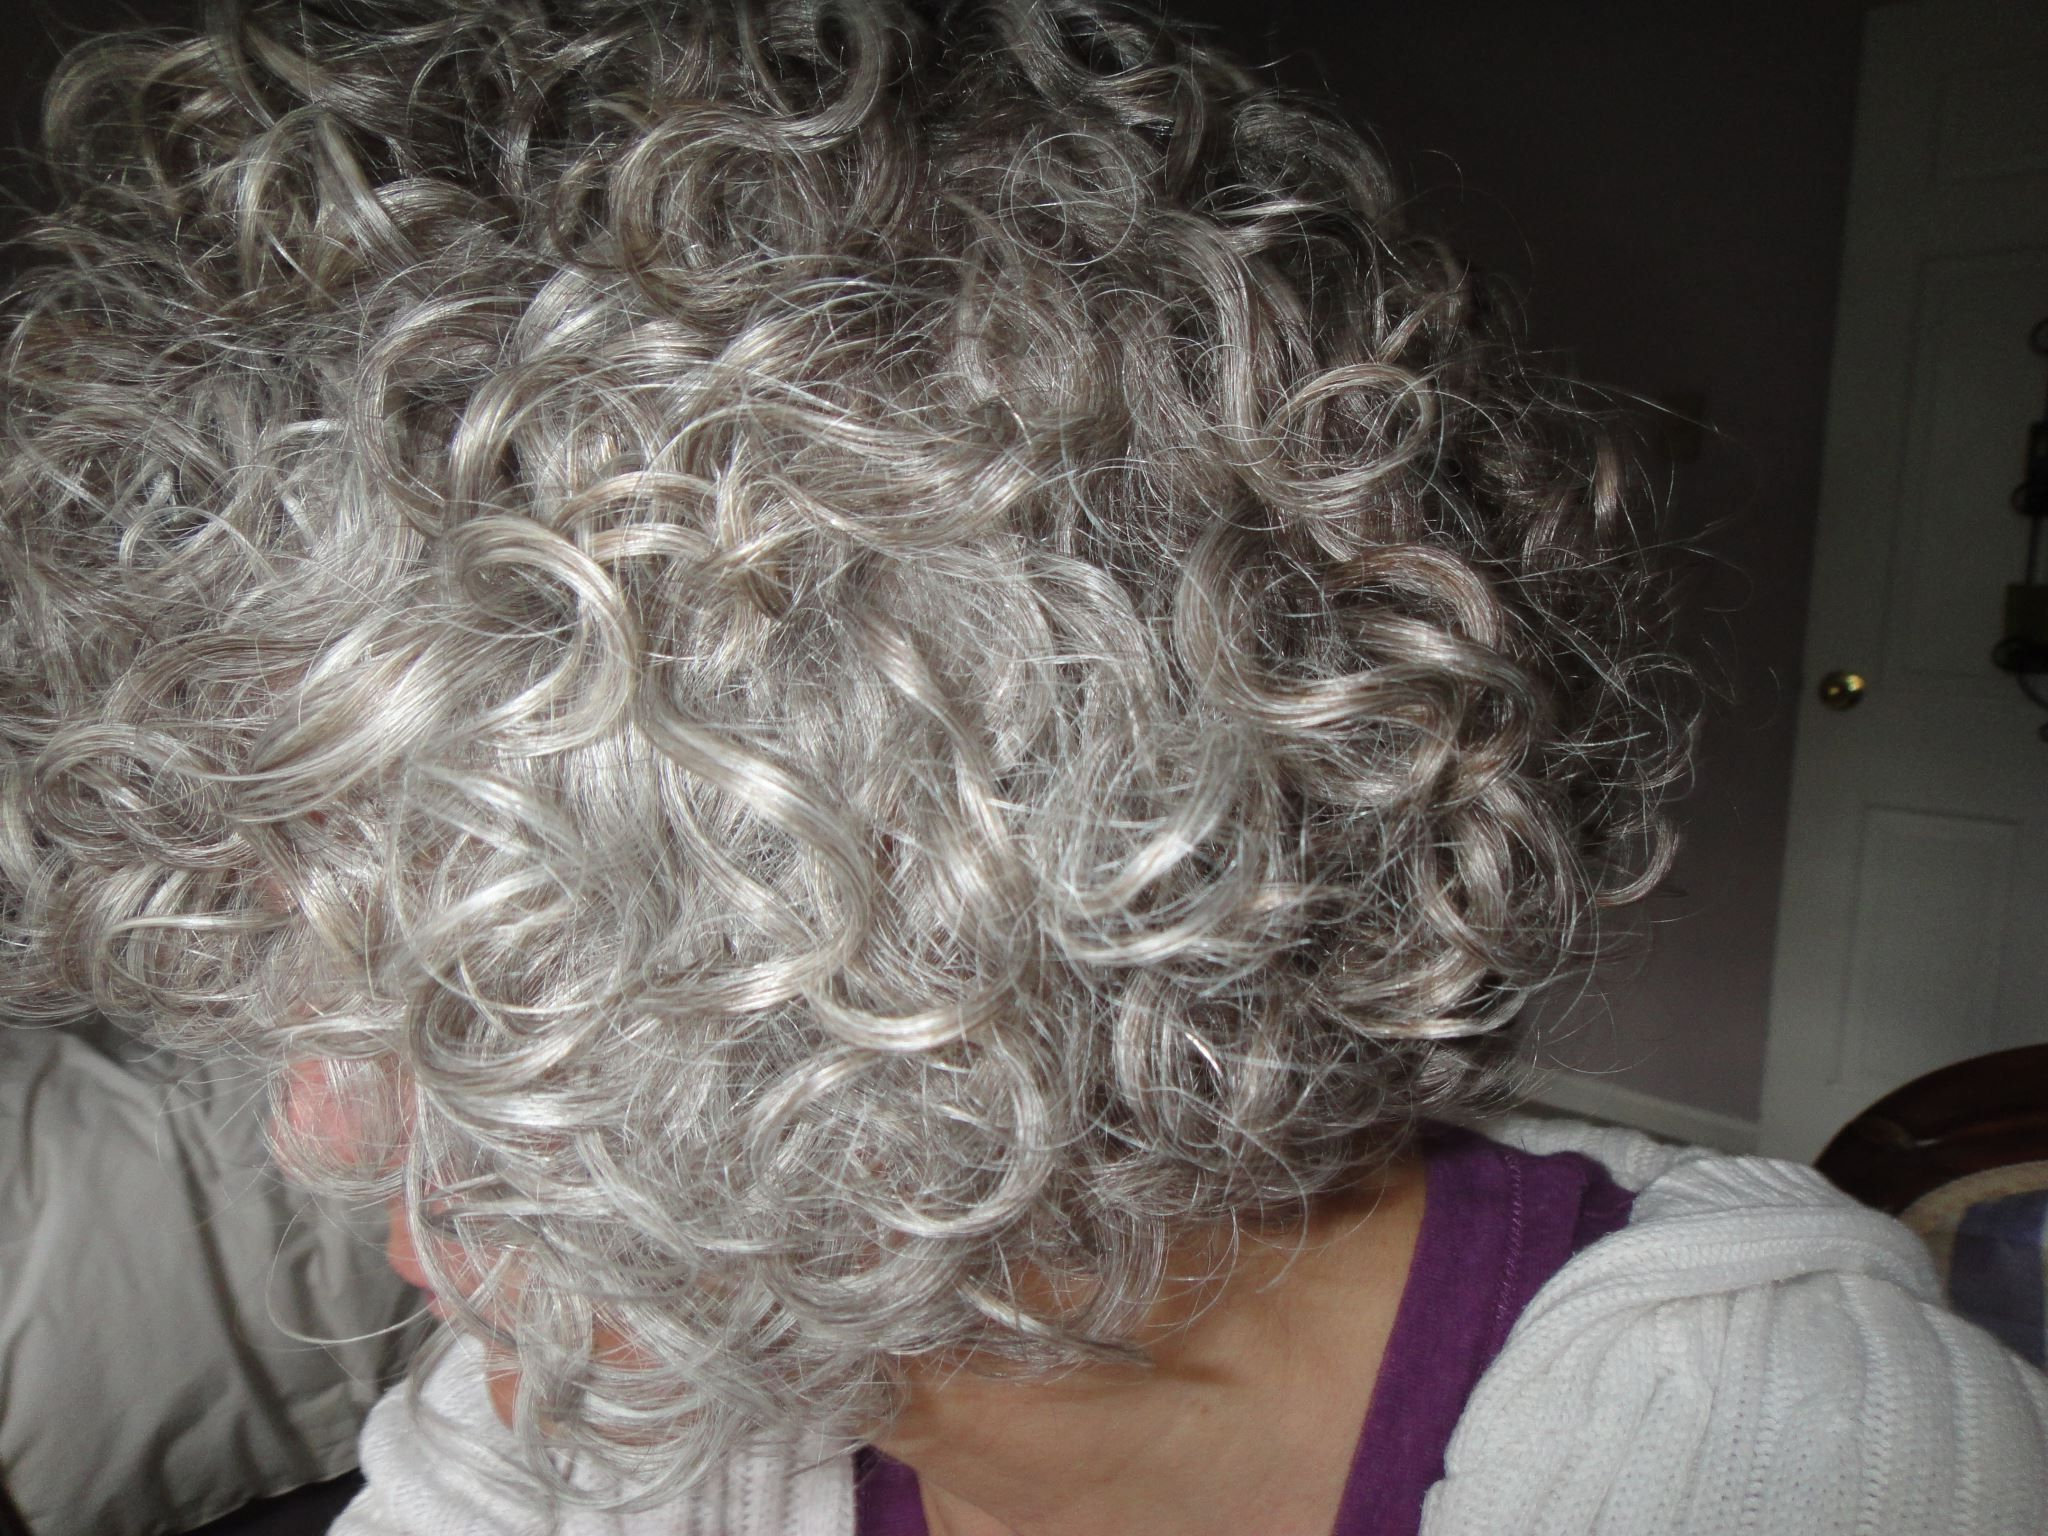 The Only Thing Better Than Gray Hair Is Curly Gray Hair! Me In A Pertaining To Curly Grayhairstyles (View 18 of 20)